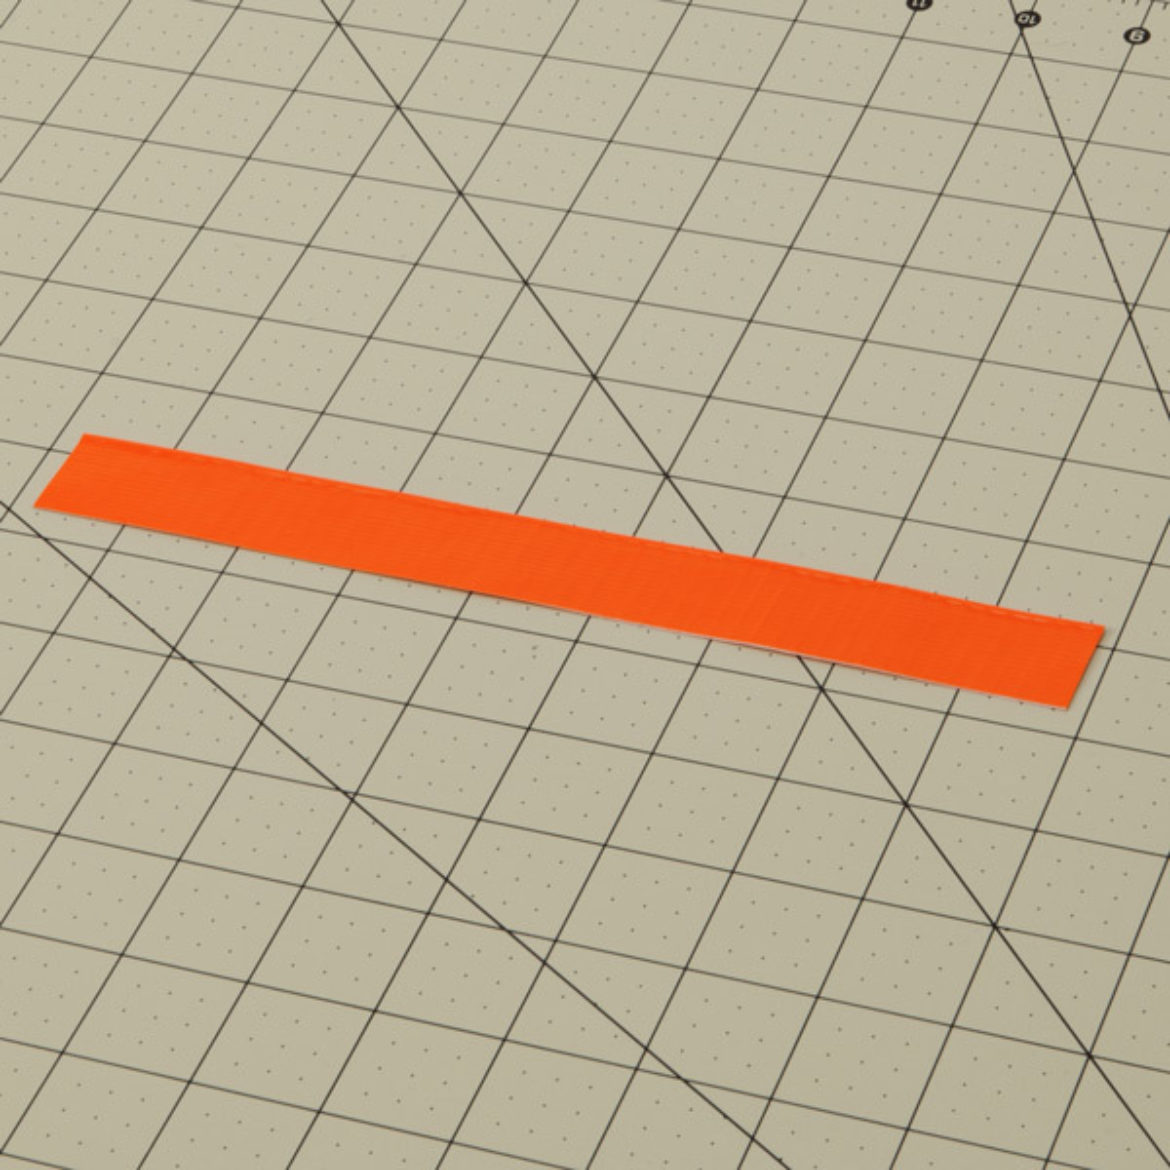 Strip of Orange Duck Tape filded length wise to create a double sided strip of Duck Tape